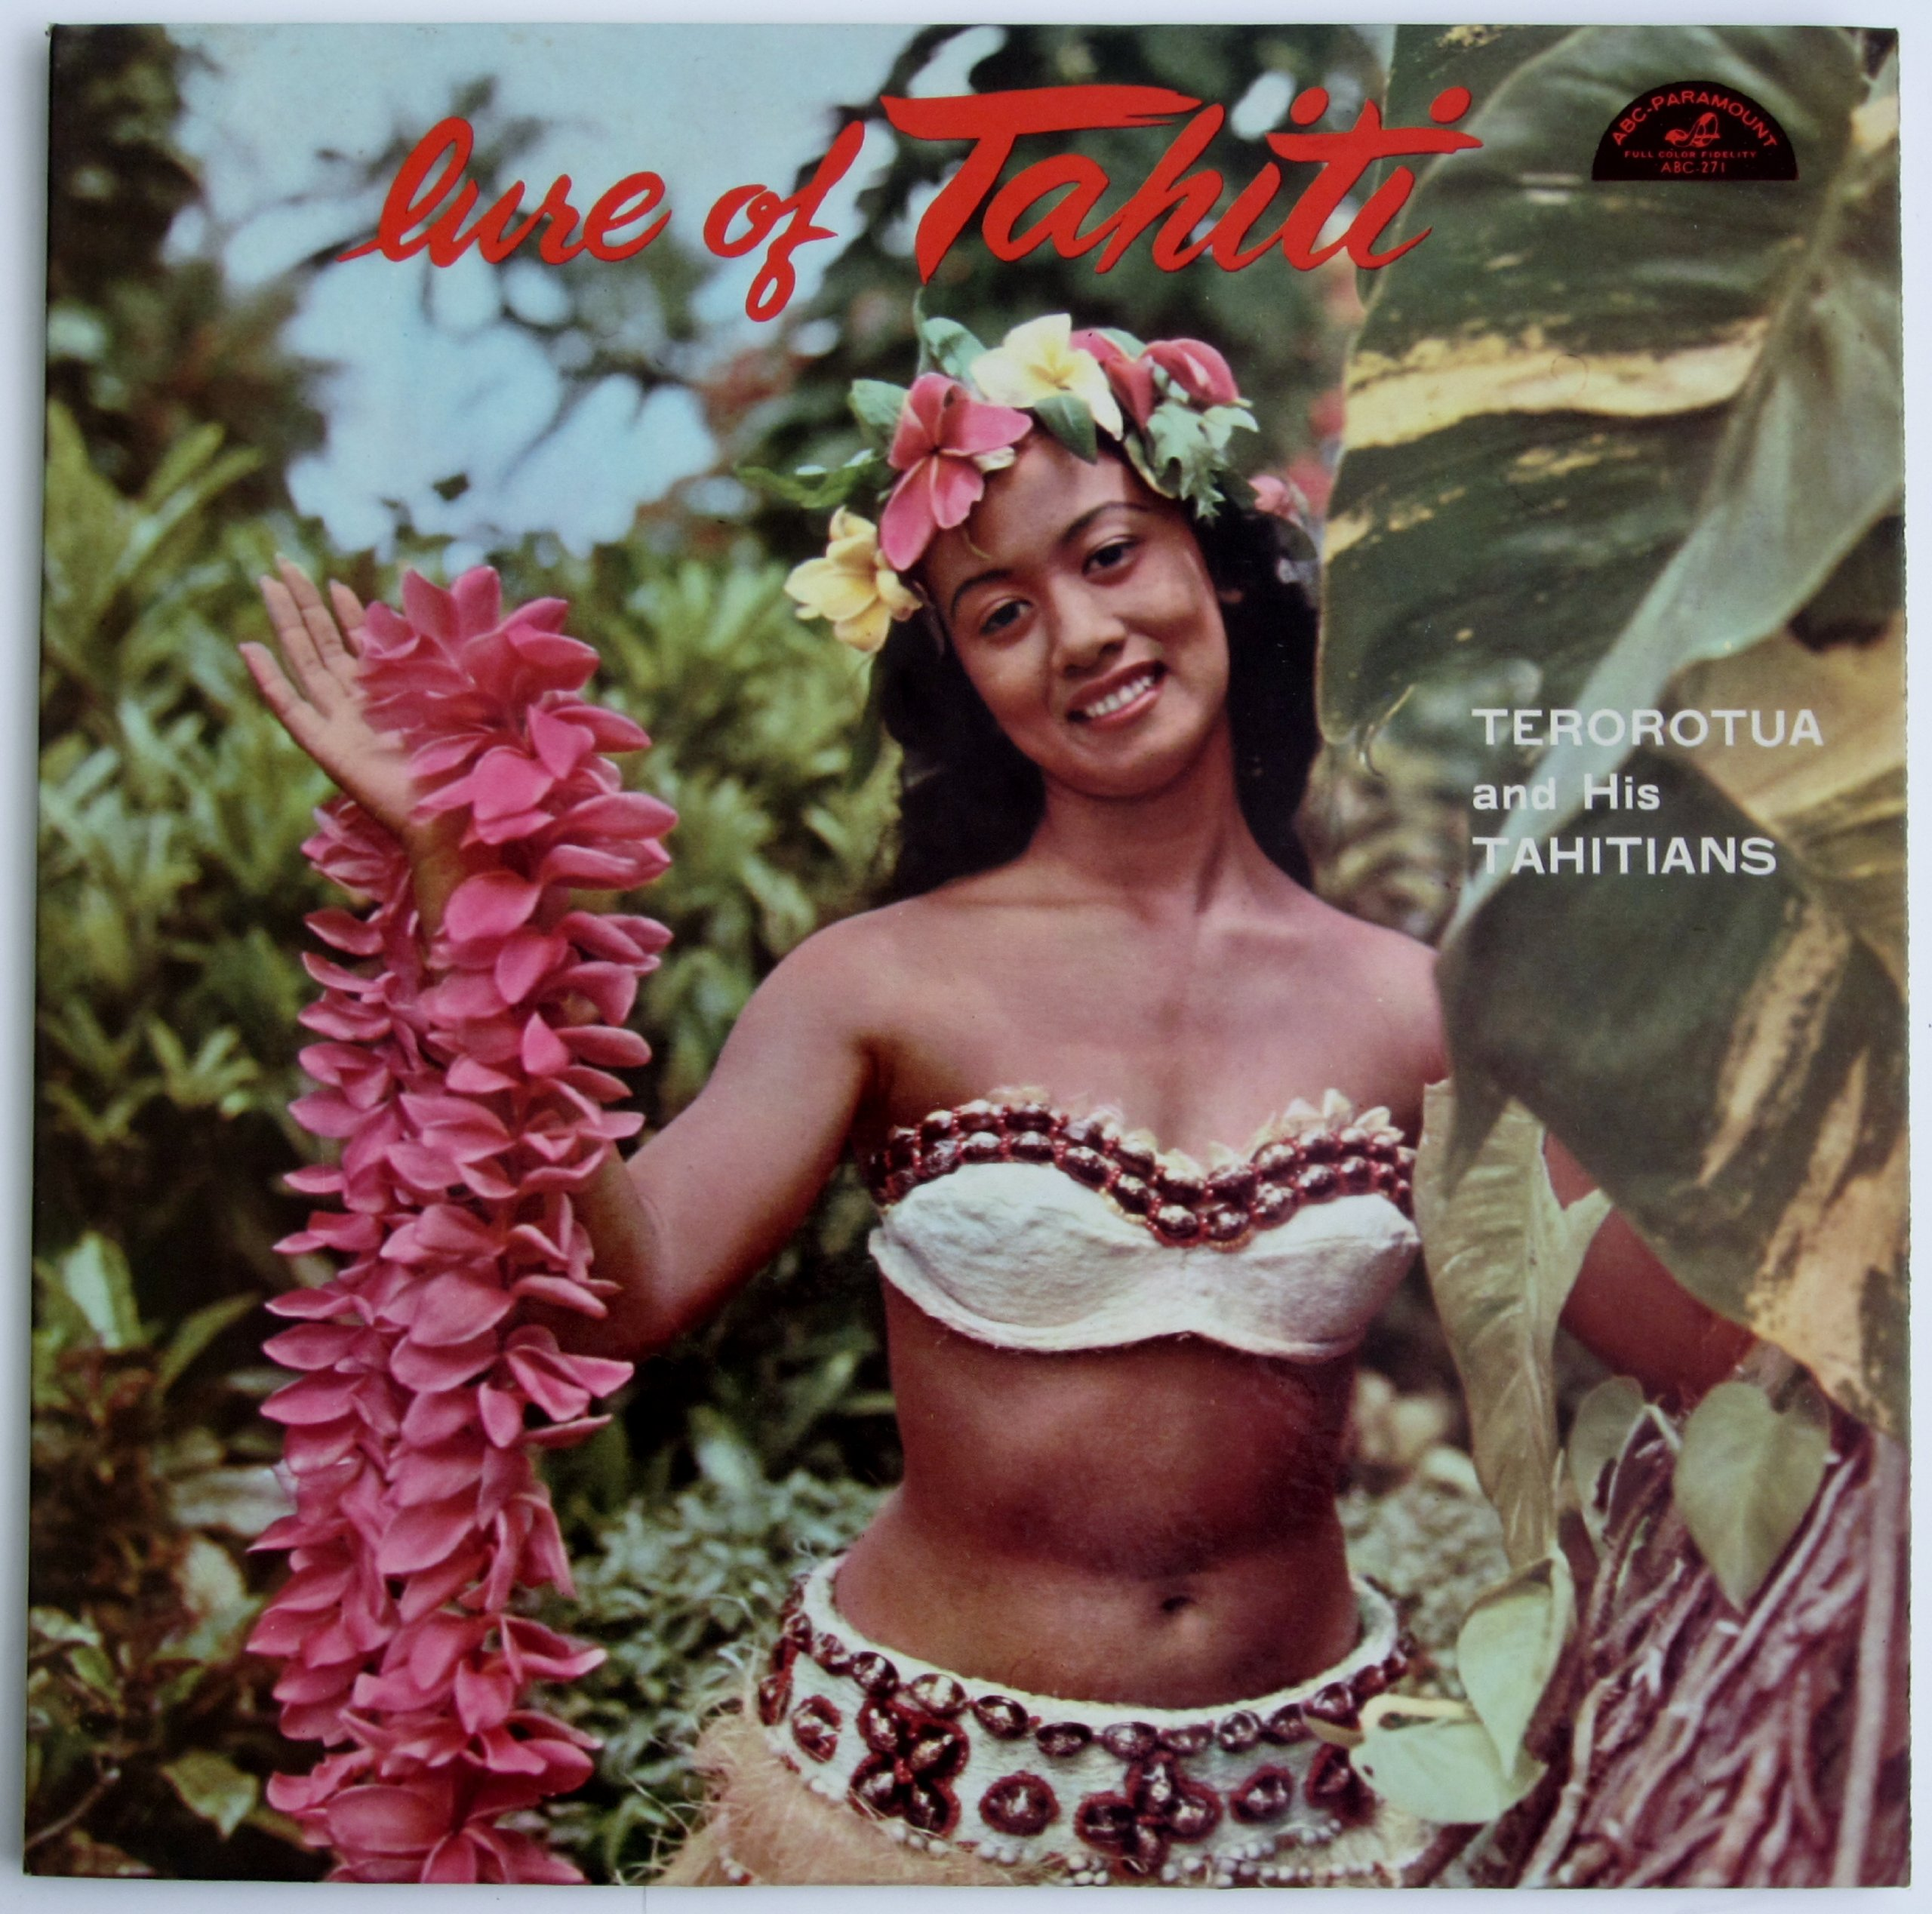 Lure of Tahiti: Terorotua and His Tahitians by ABC-Paramount